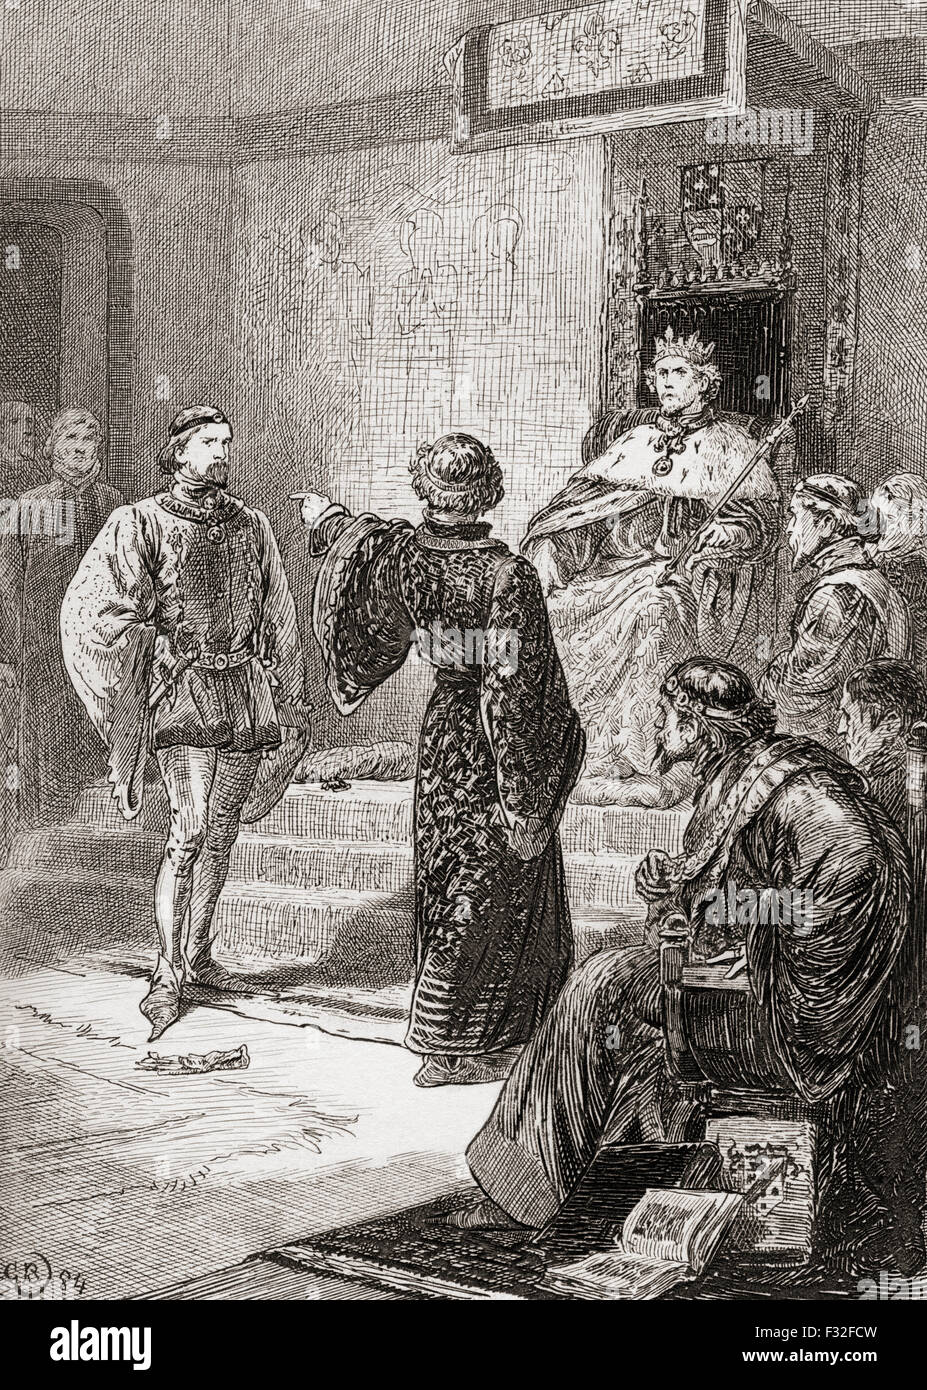 an analysis of the character and actions of richard in the play richard ii Richard ii critical essays  in later scenes richard becomes a more sympathetic character  the play richard ii is one of shakespeare's history plays and,.